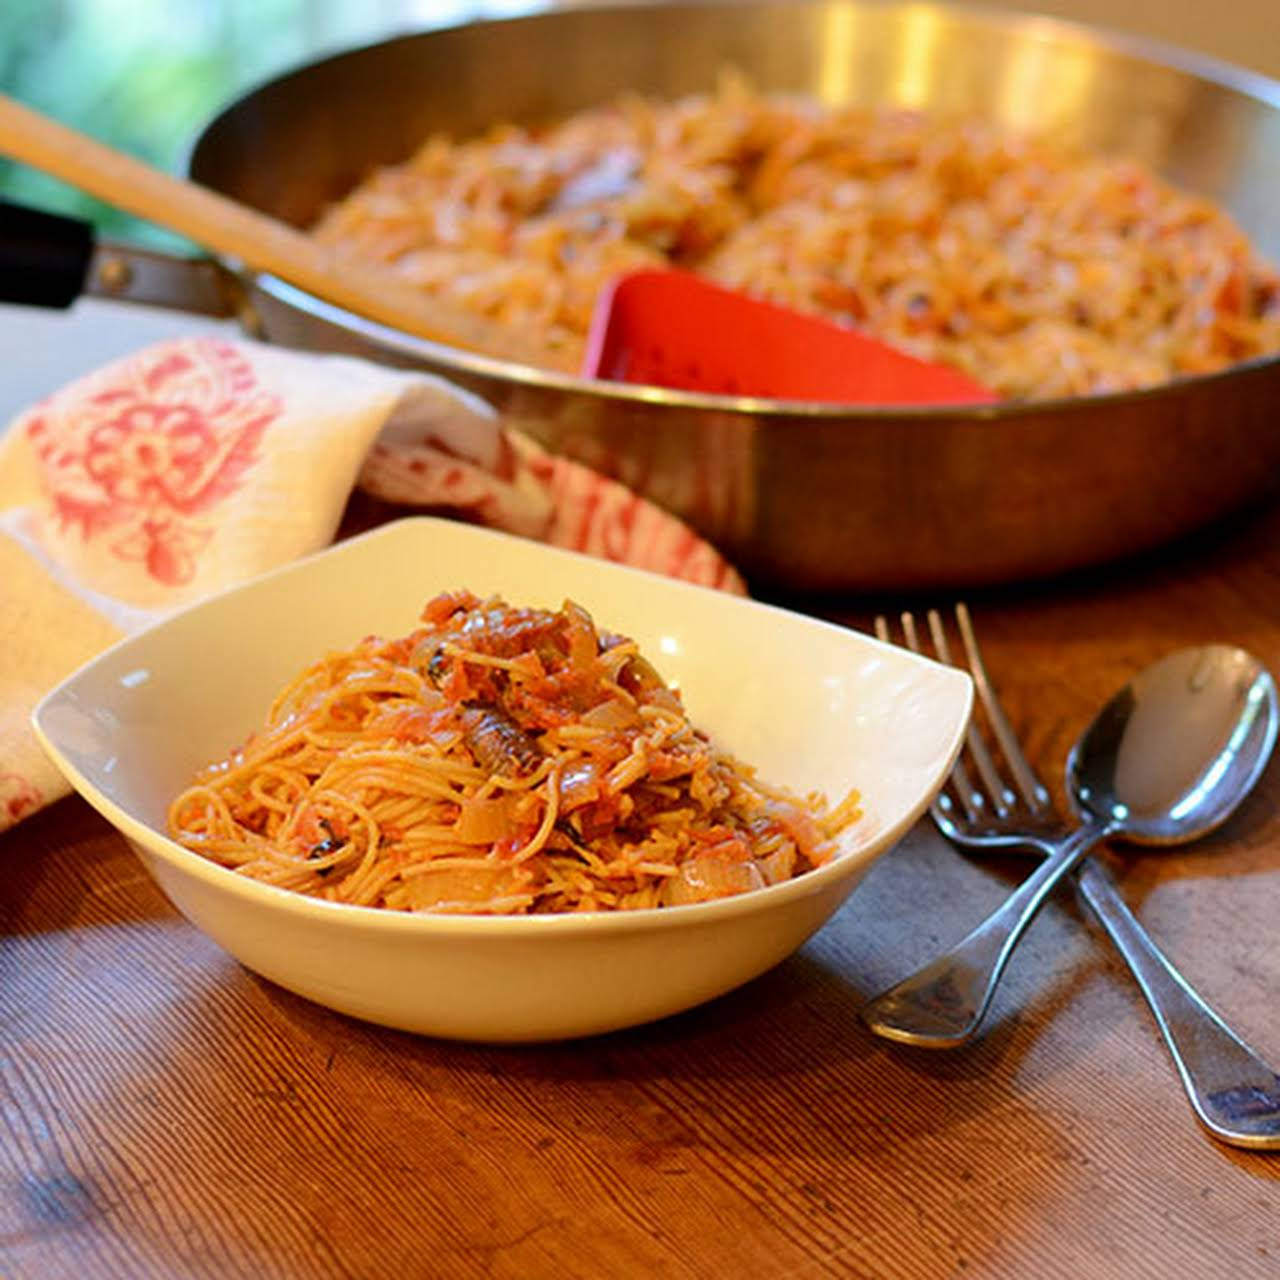 Angel Hair Pasta With a Roasted Tomato Onion Sauce